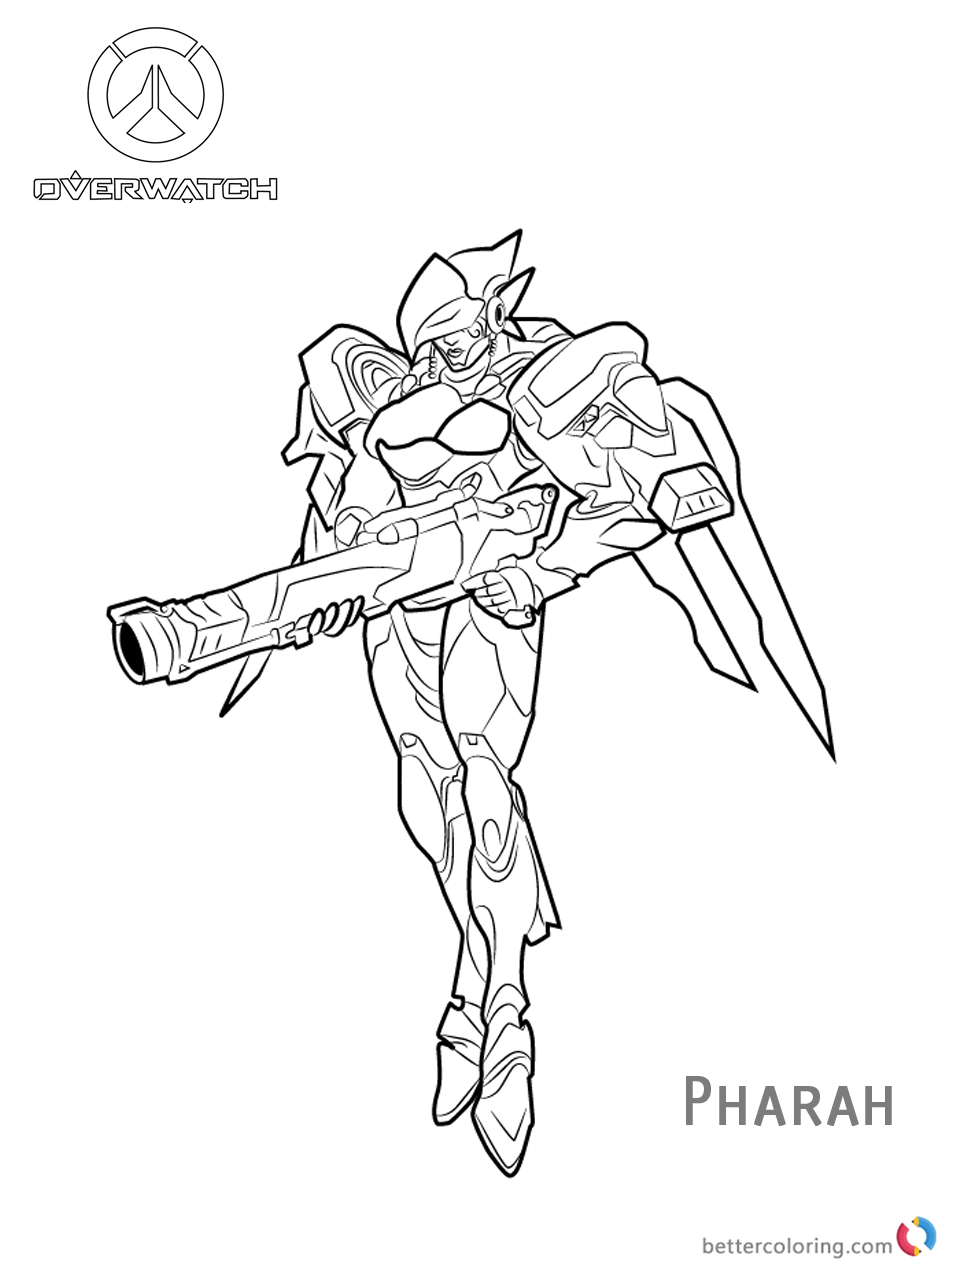 Pharah From Overwatch Coloring Pages Free Printable